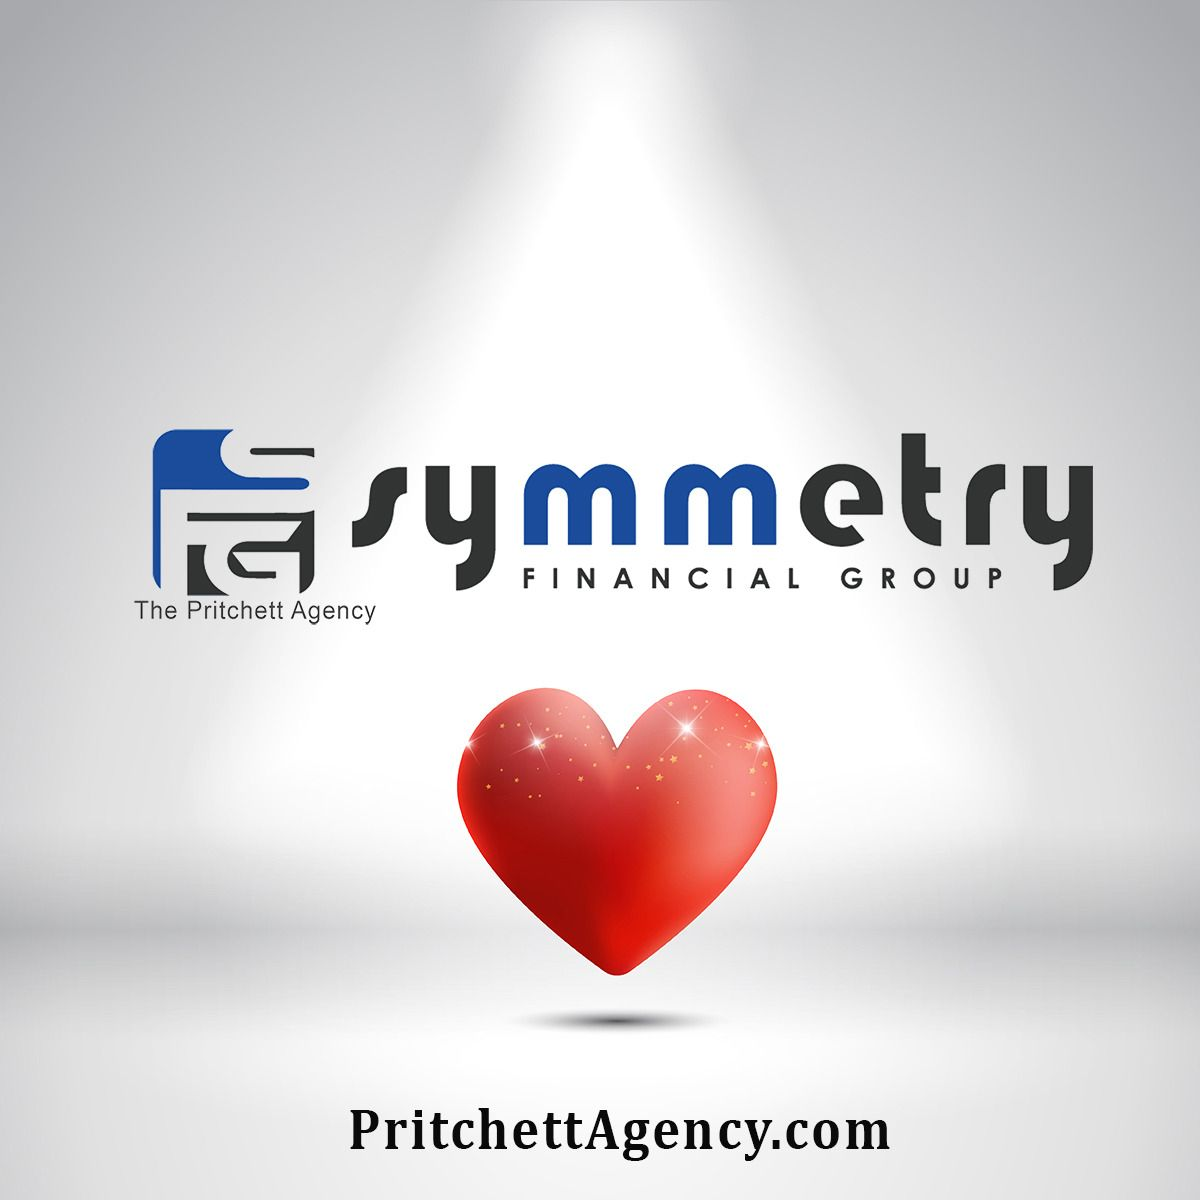 The pritchett agency done with life buy life insurance